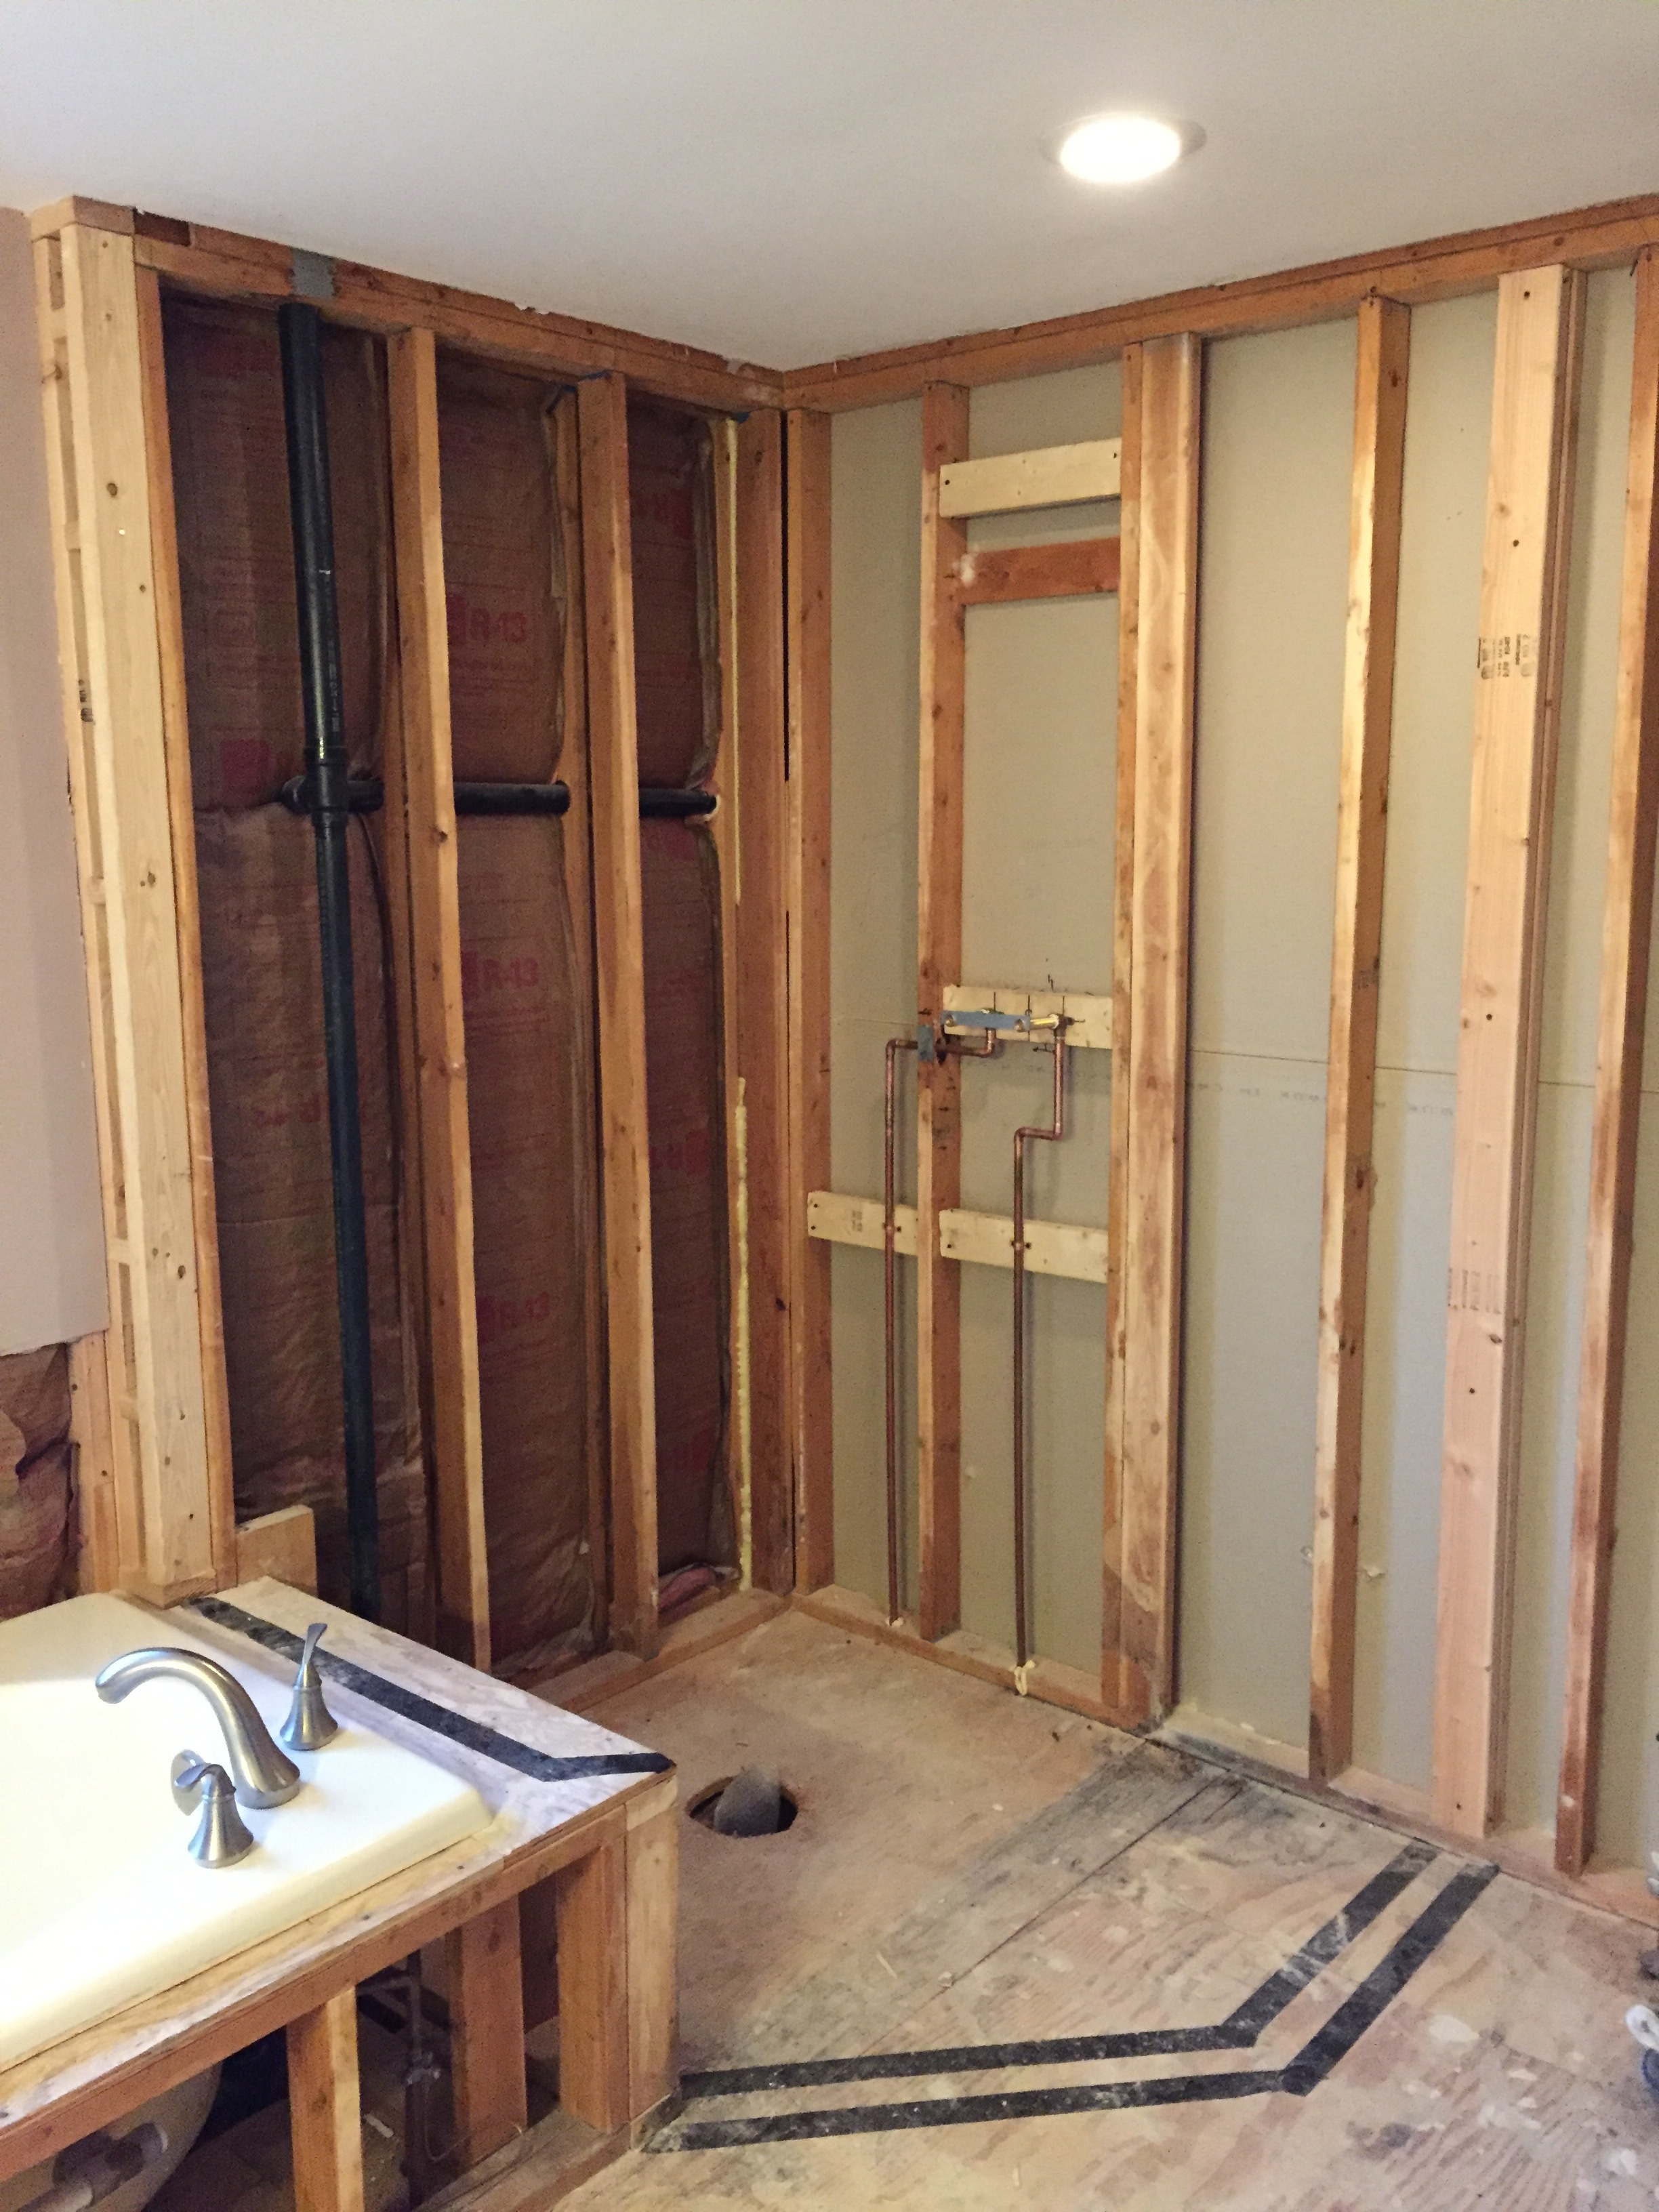 "Shower Design - We used tape to map out the area for the shower trying to optimize the size while keeping in mind the width and clearance for the door and the building code for proximity to the toilet. The homeowners wanted a slightly thicker 1/2"" clear tempered glass rather than the typical 3/8"" thickness for a more dramatic frameless shower effect.  The trade-off was cost and needing to install a header to support the thicker, heavier glass and the 31"" door width.  An 80"" shower height was selected to make the nickel header less noticeable.  The design included a 5"" overhang on the tub platform to allow someone to comfortably rest a leg for shaving or washing.  Wall studs were added at each end of the shower in order to secure the heavy glass panels."